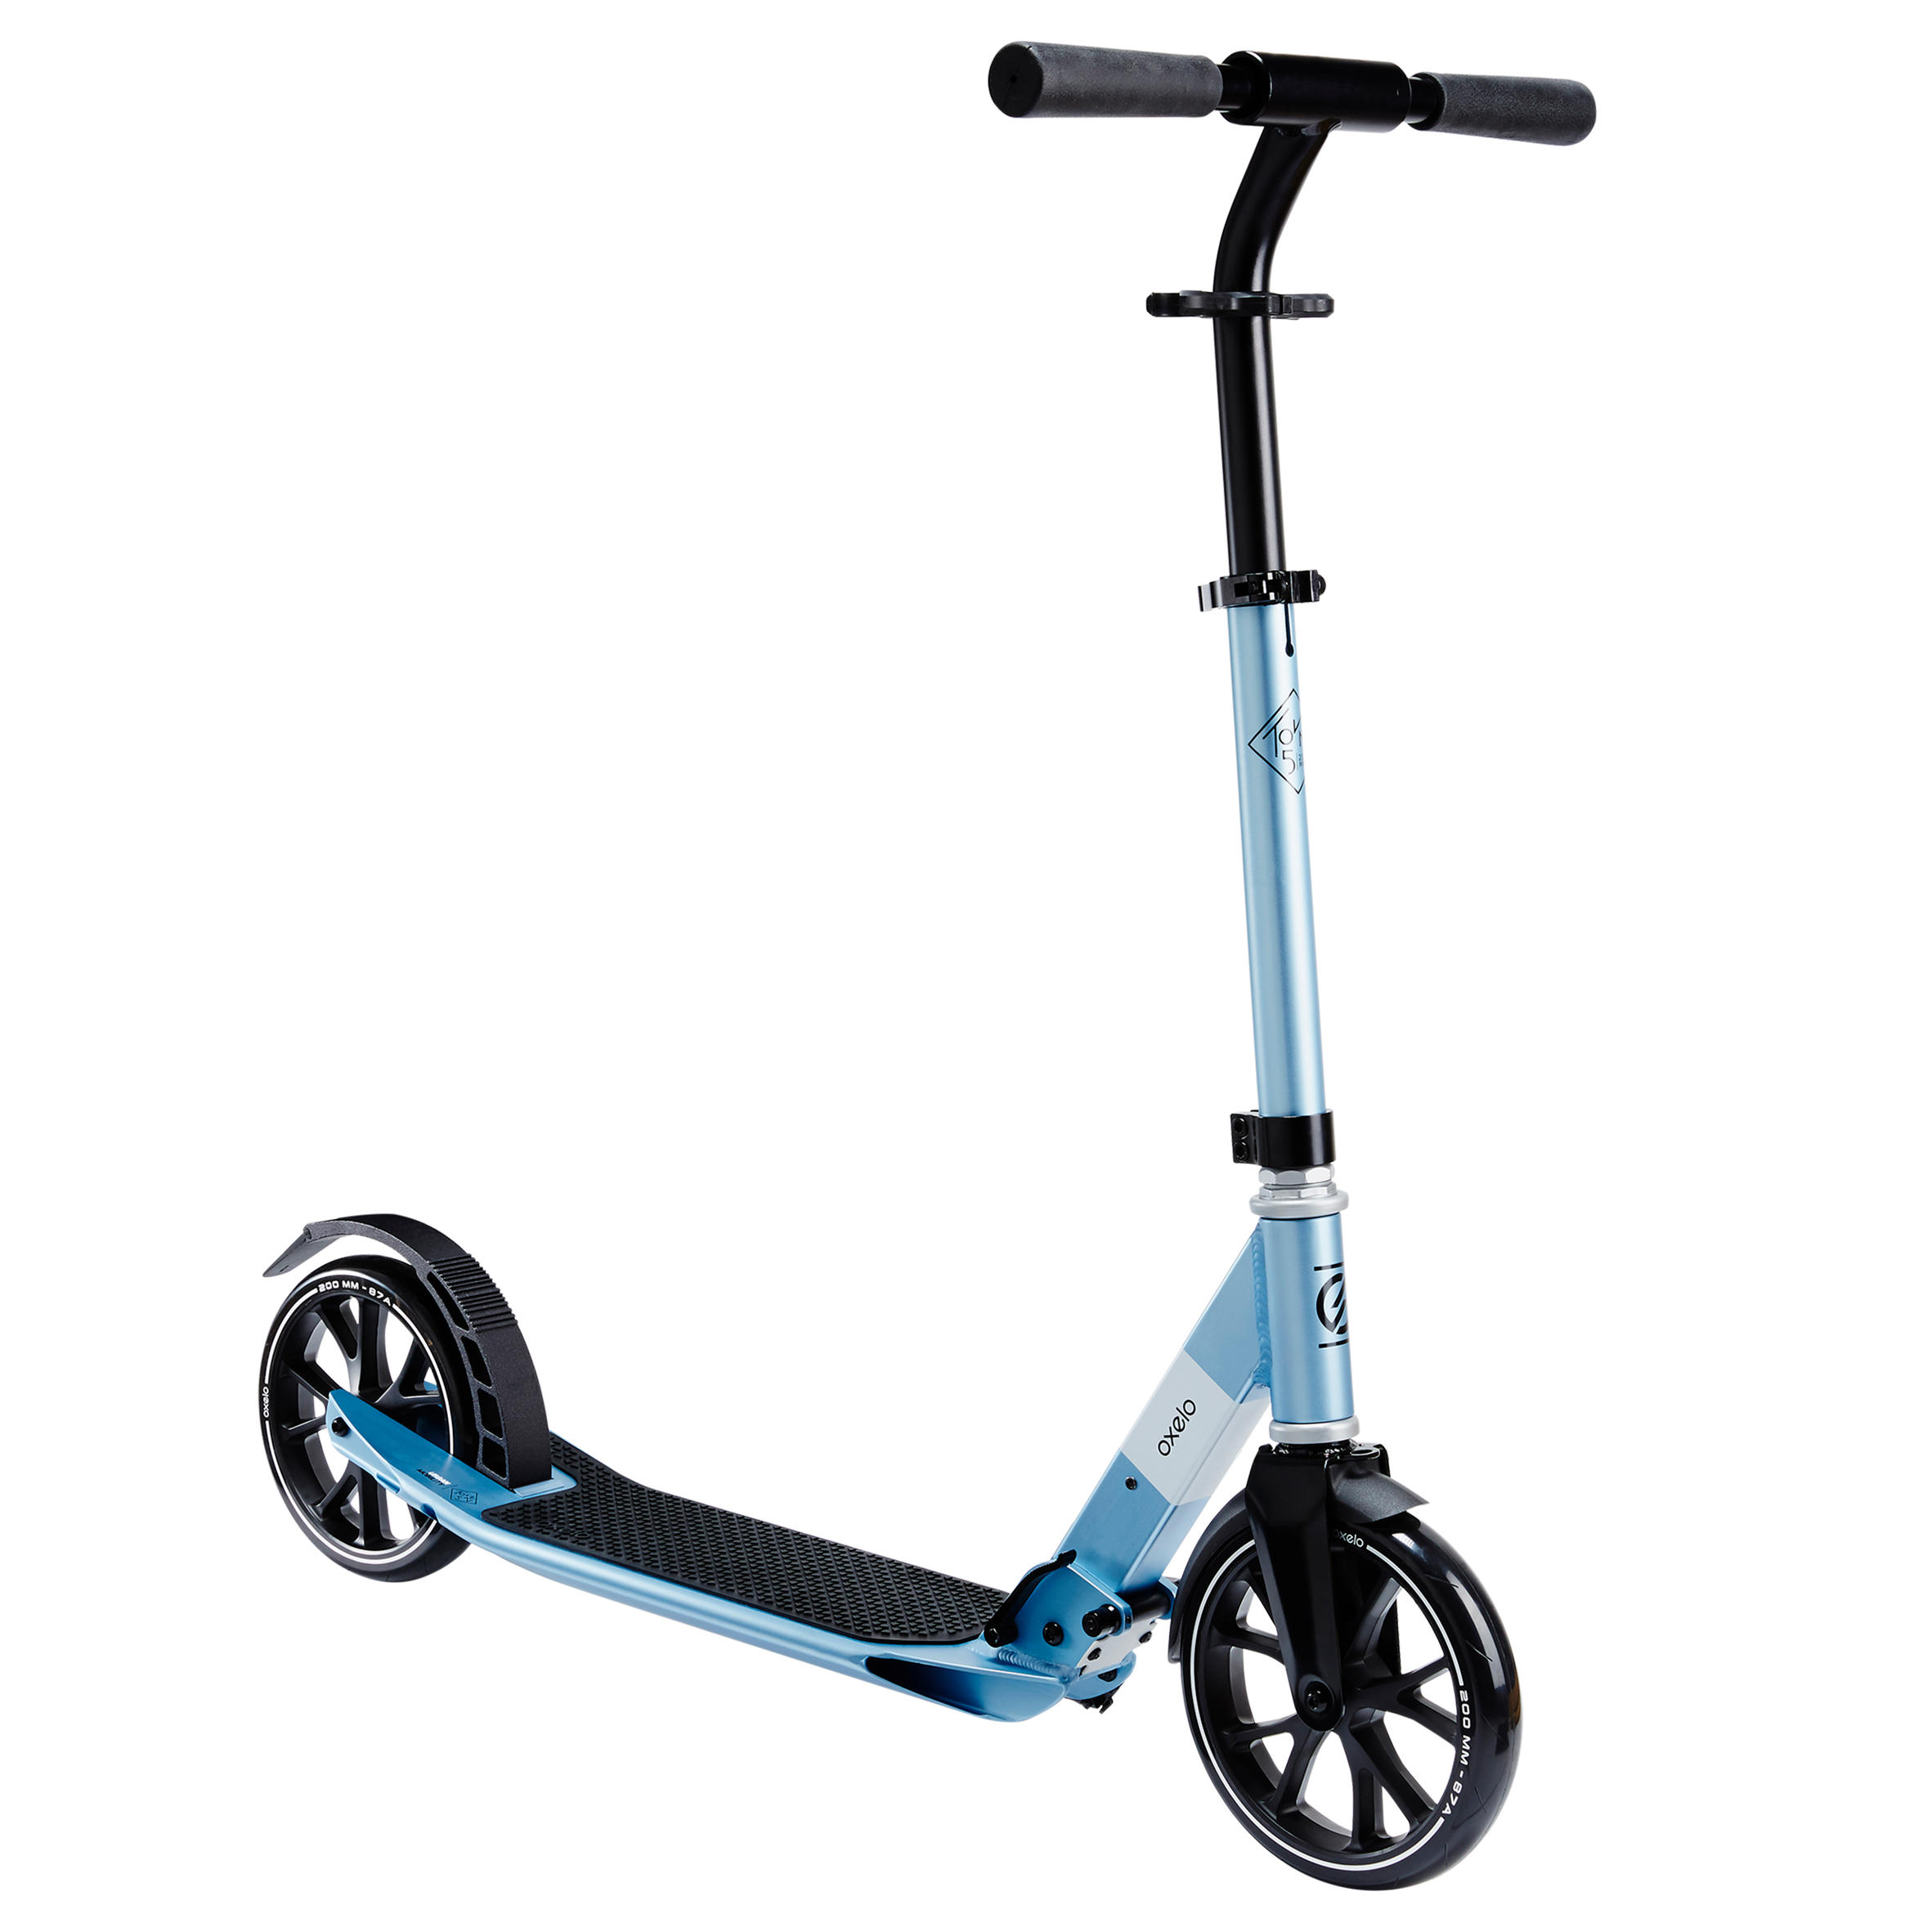 Town 5 XL Adult Scooter -